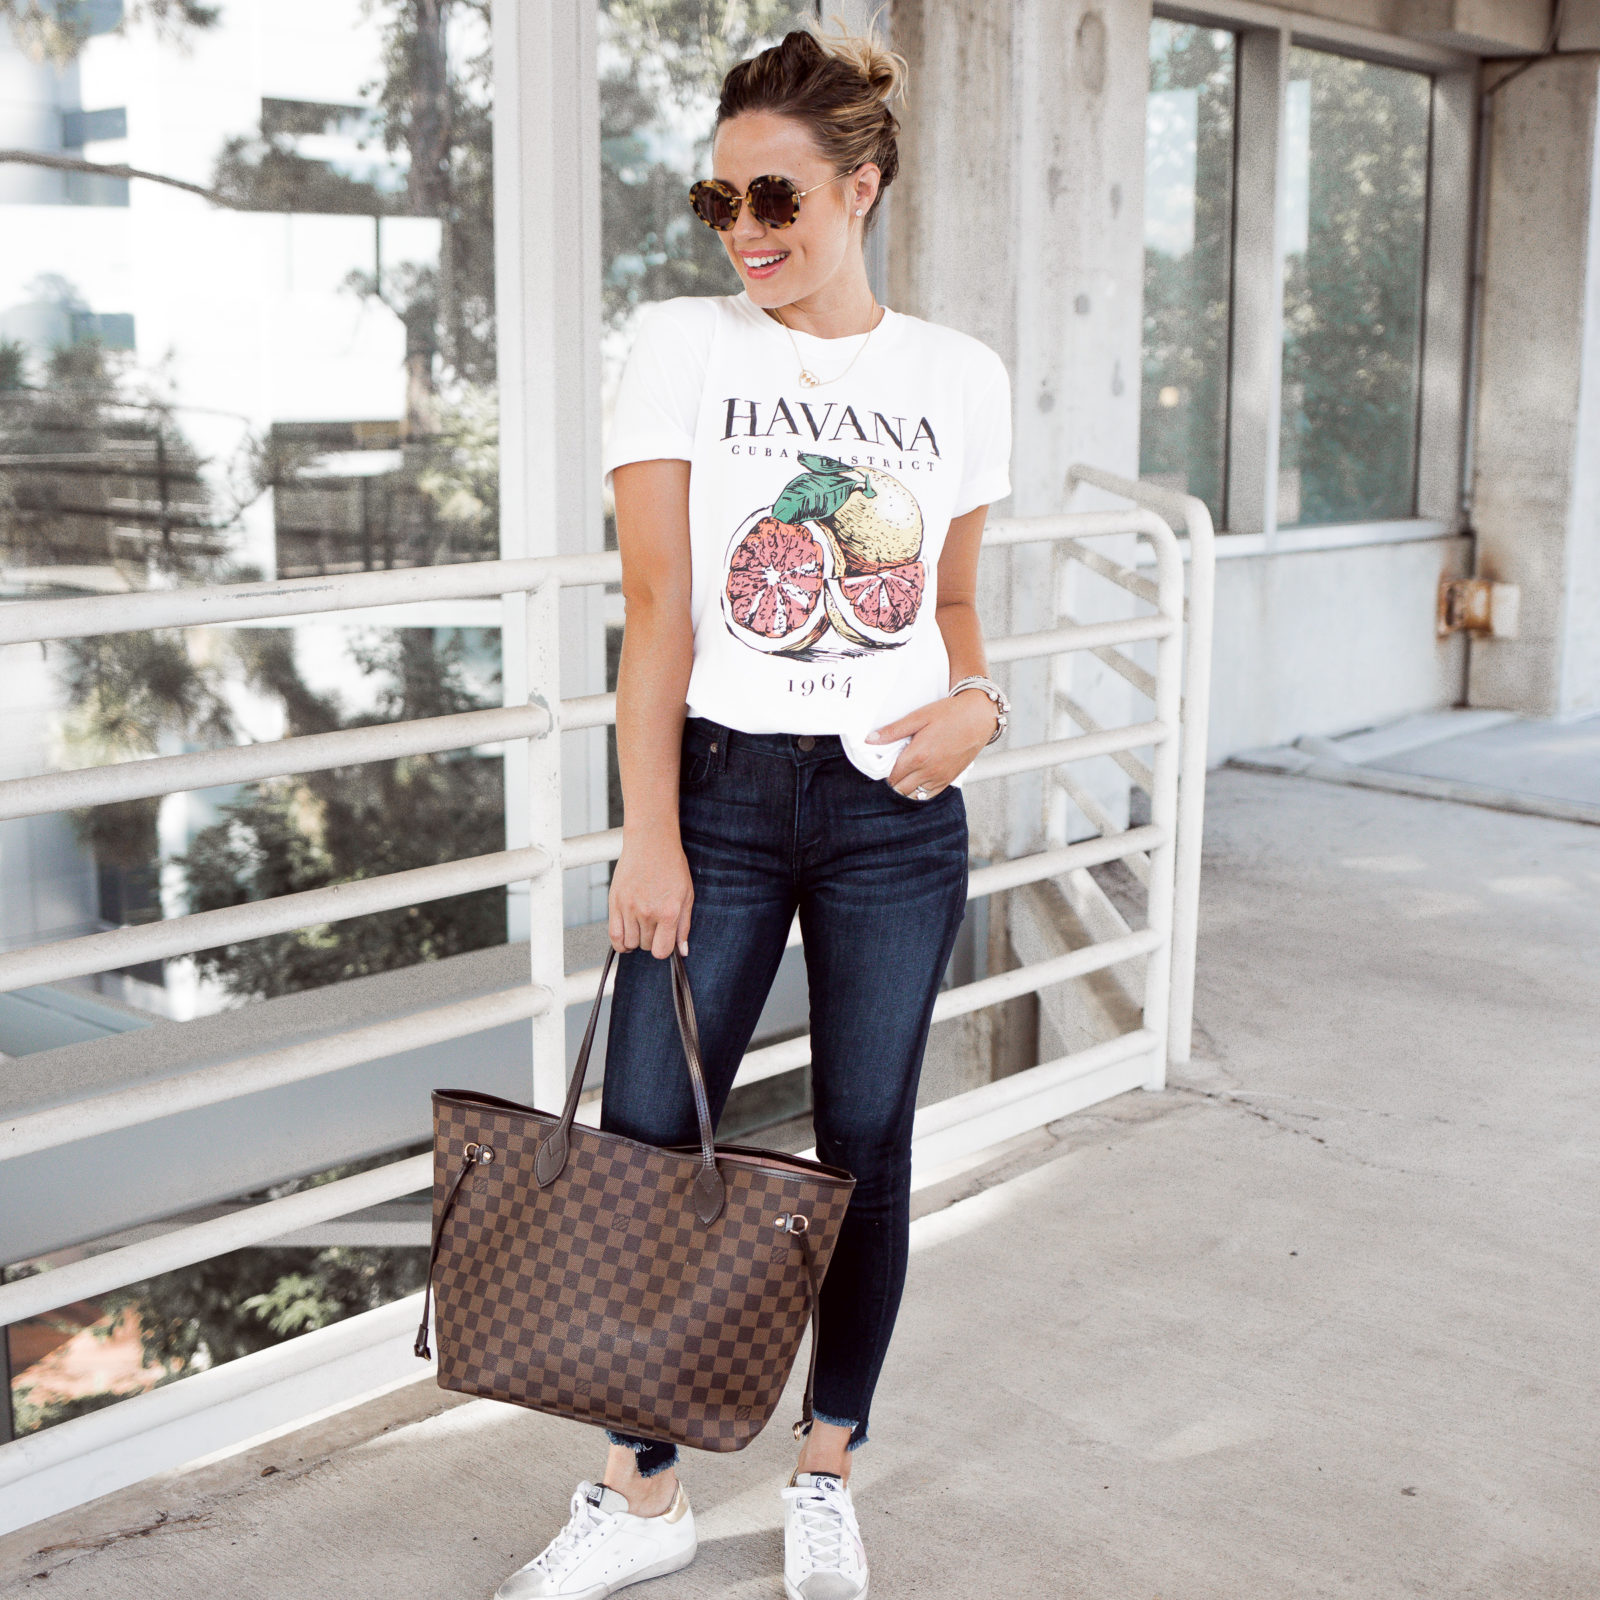 Houston Fashion blogger Uptown with Elly Brown shares her her thoughts on if the Golden Goose sneakers are actually worth the money.